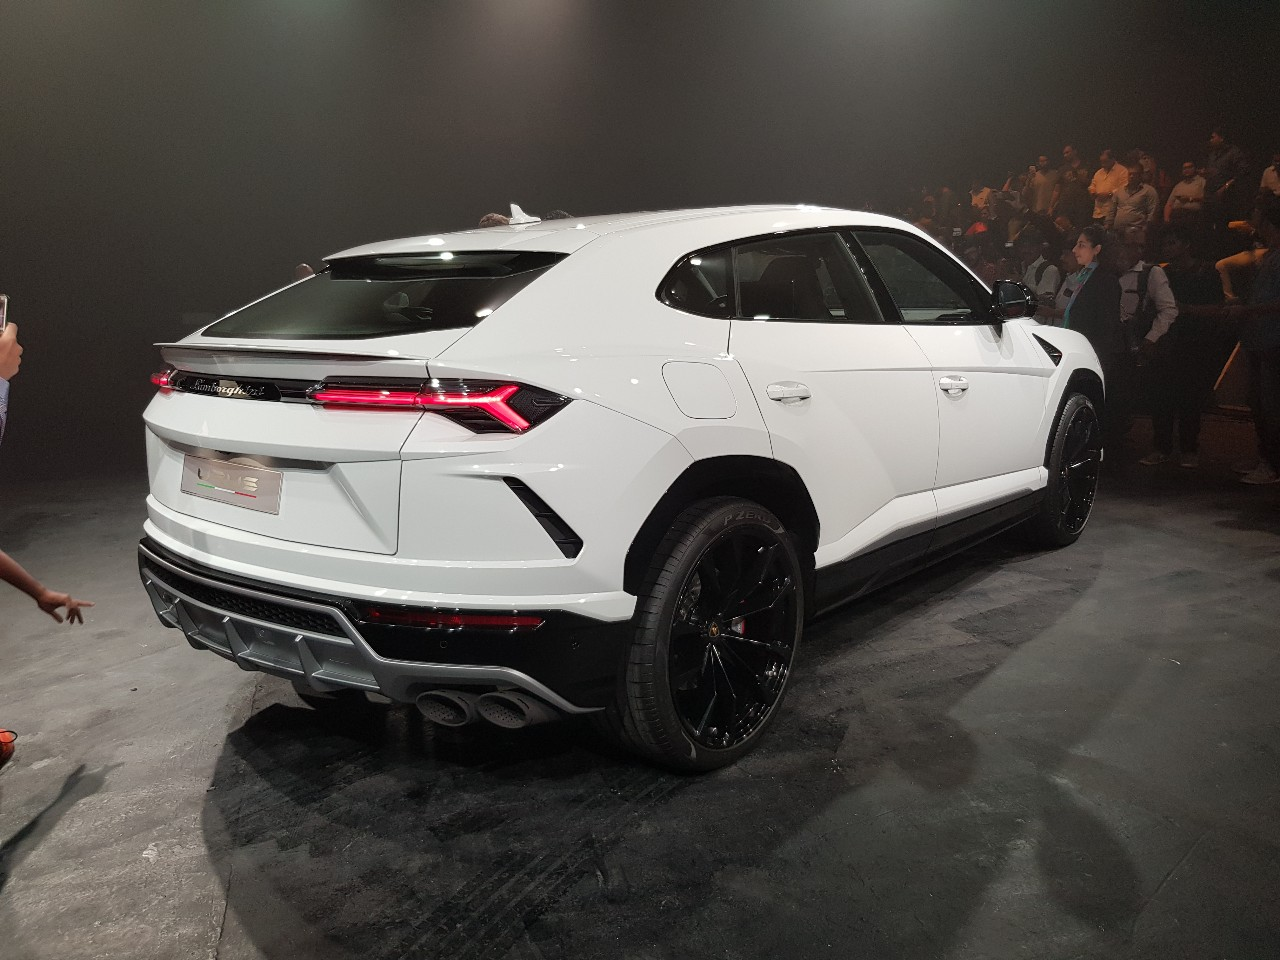 70 Lamborghini Urus Bookings In India Are First Time Buyers Report